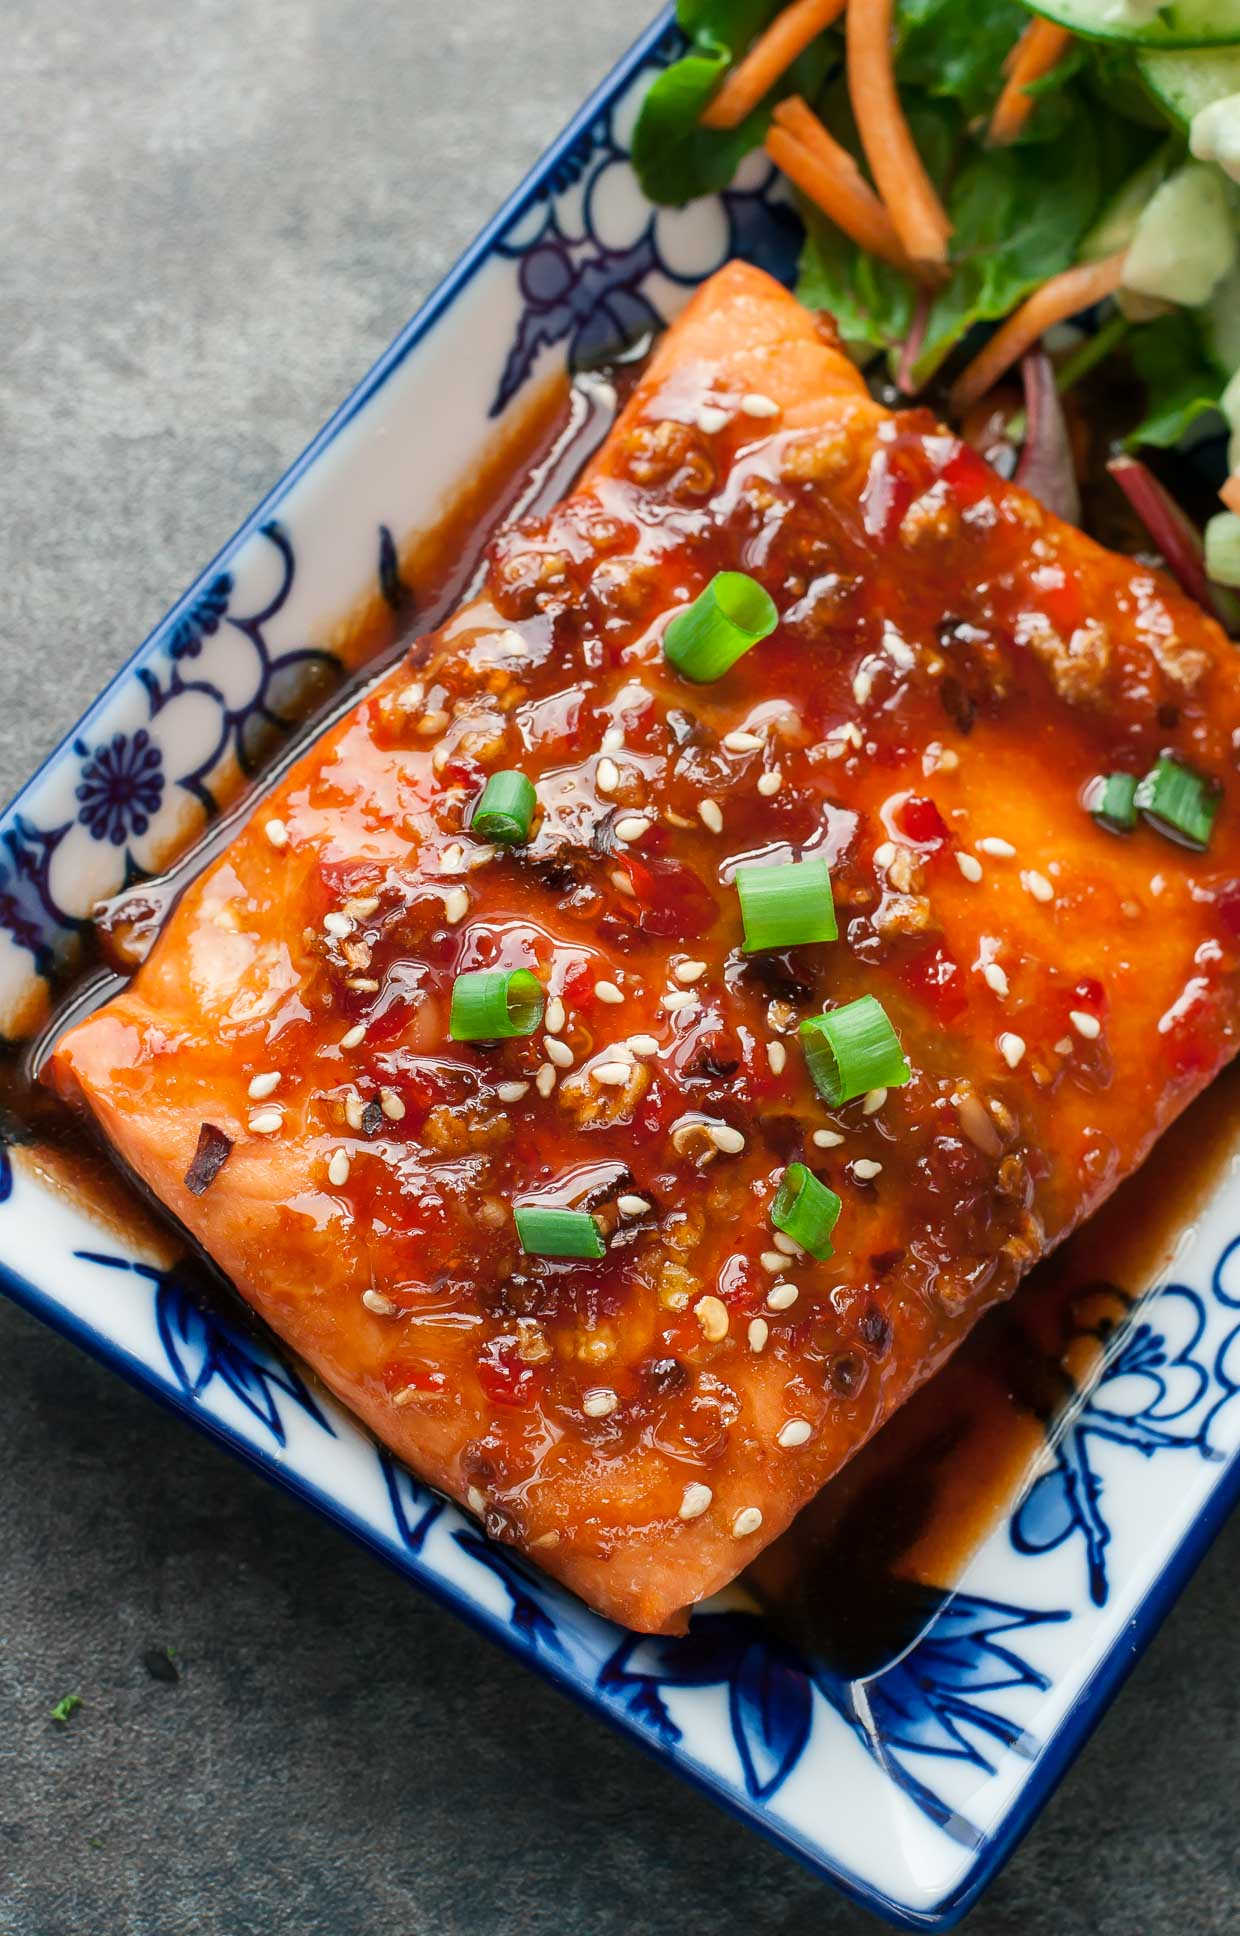 Looking for a new way to jazz up salmon and make it taste GREAT!? This tasty glazed Sweet Chili Sriracha Salmon is quick, easy, and makes an impressive weeknight dinner that's full of flavor!